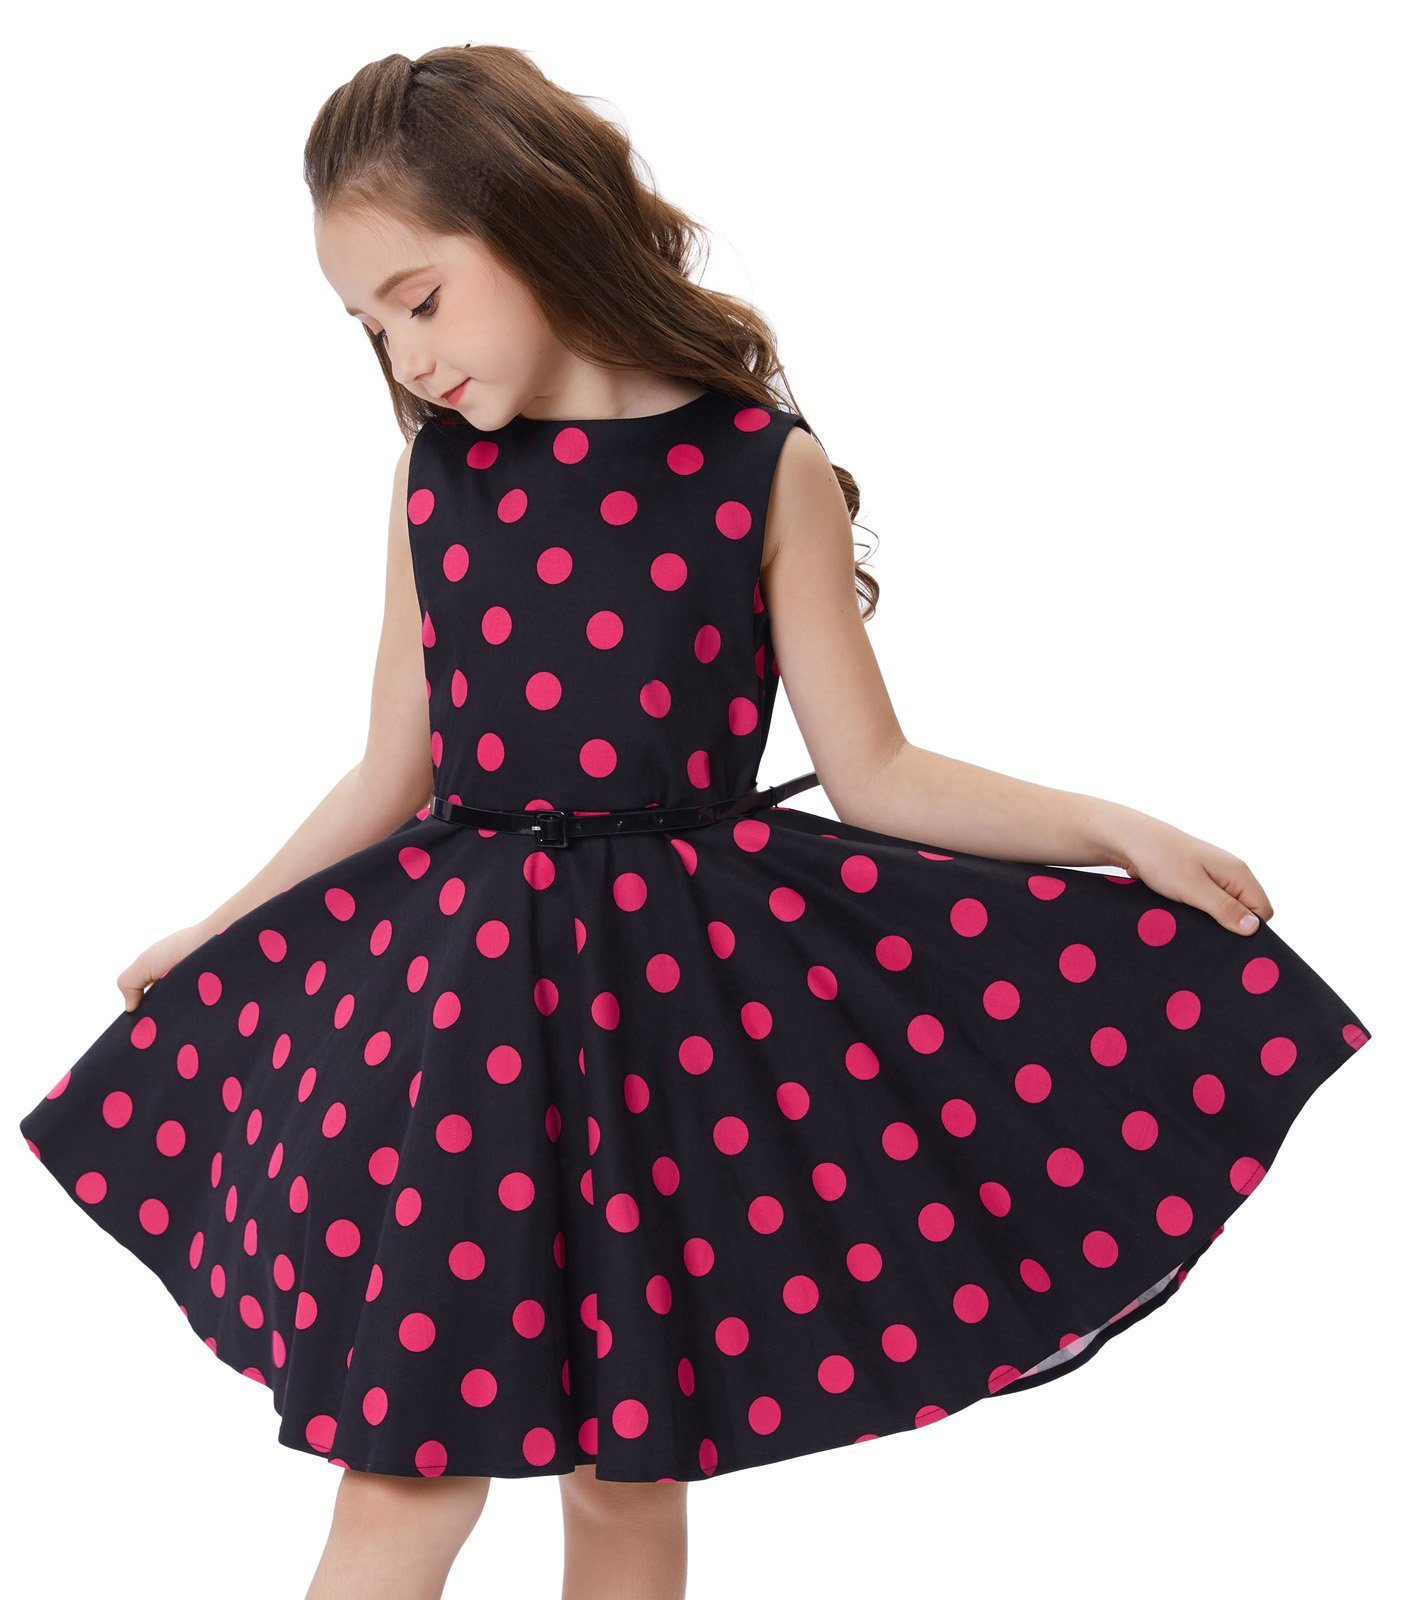 86b111795ec5 Kate Kasin Girls Sleeveless Polk Dot Casual Swing Dresses with Belt product  image